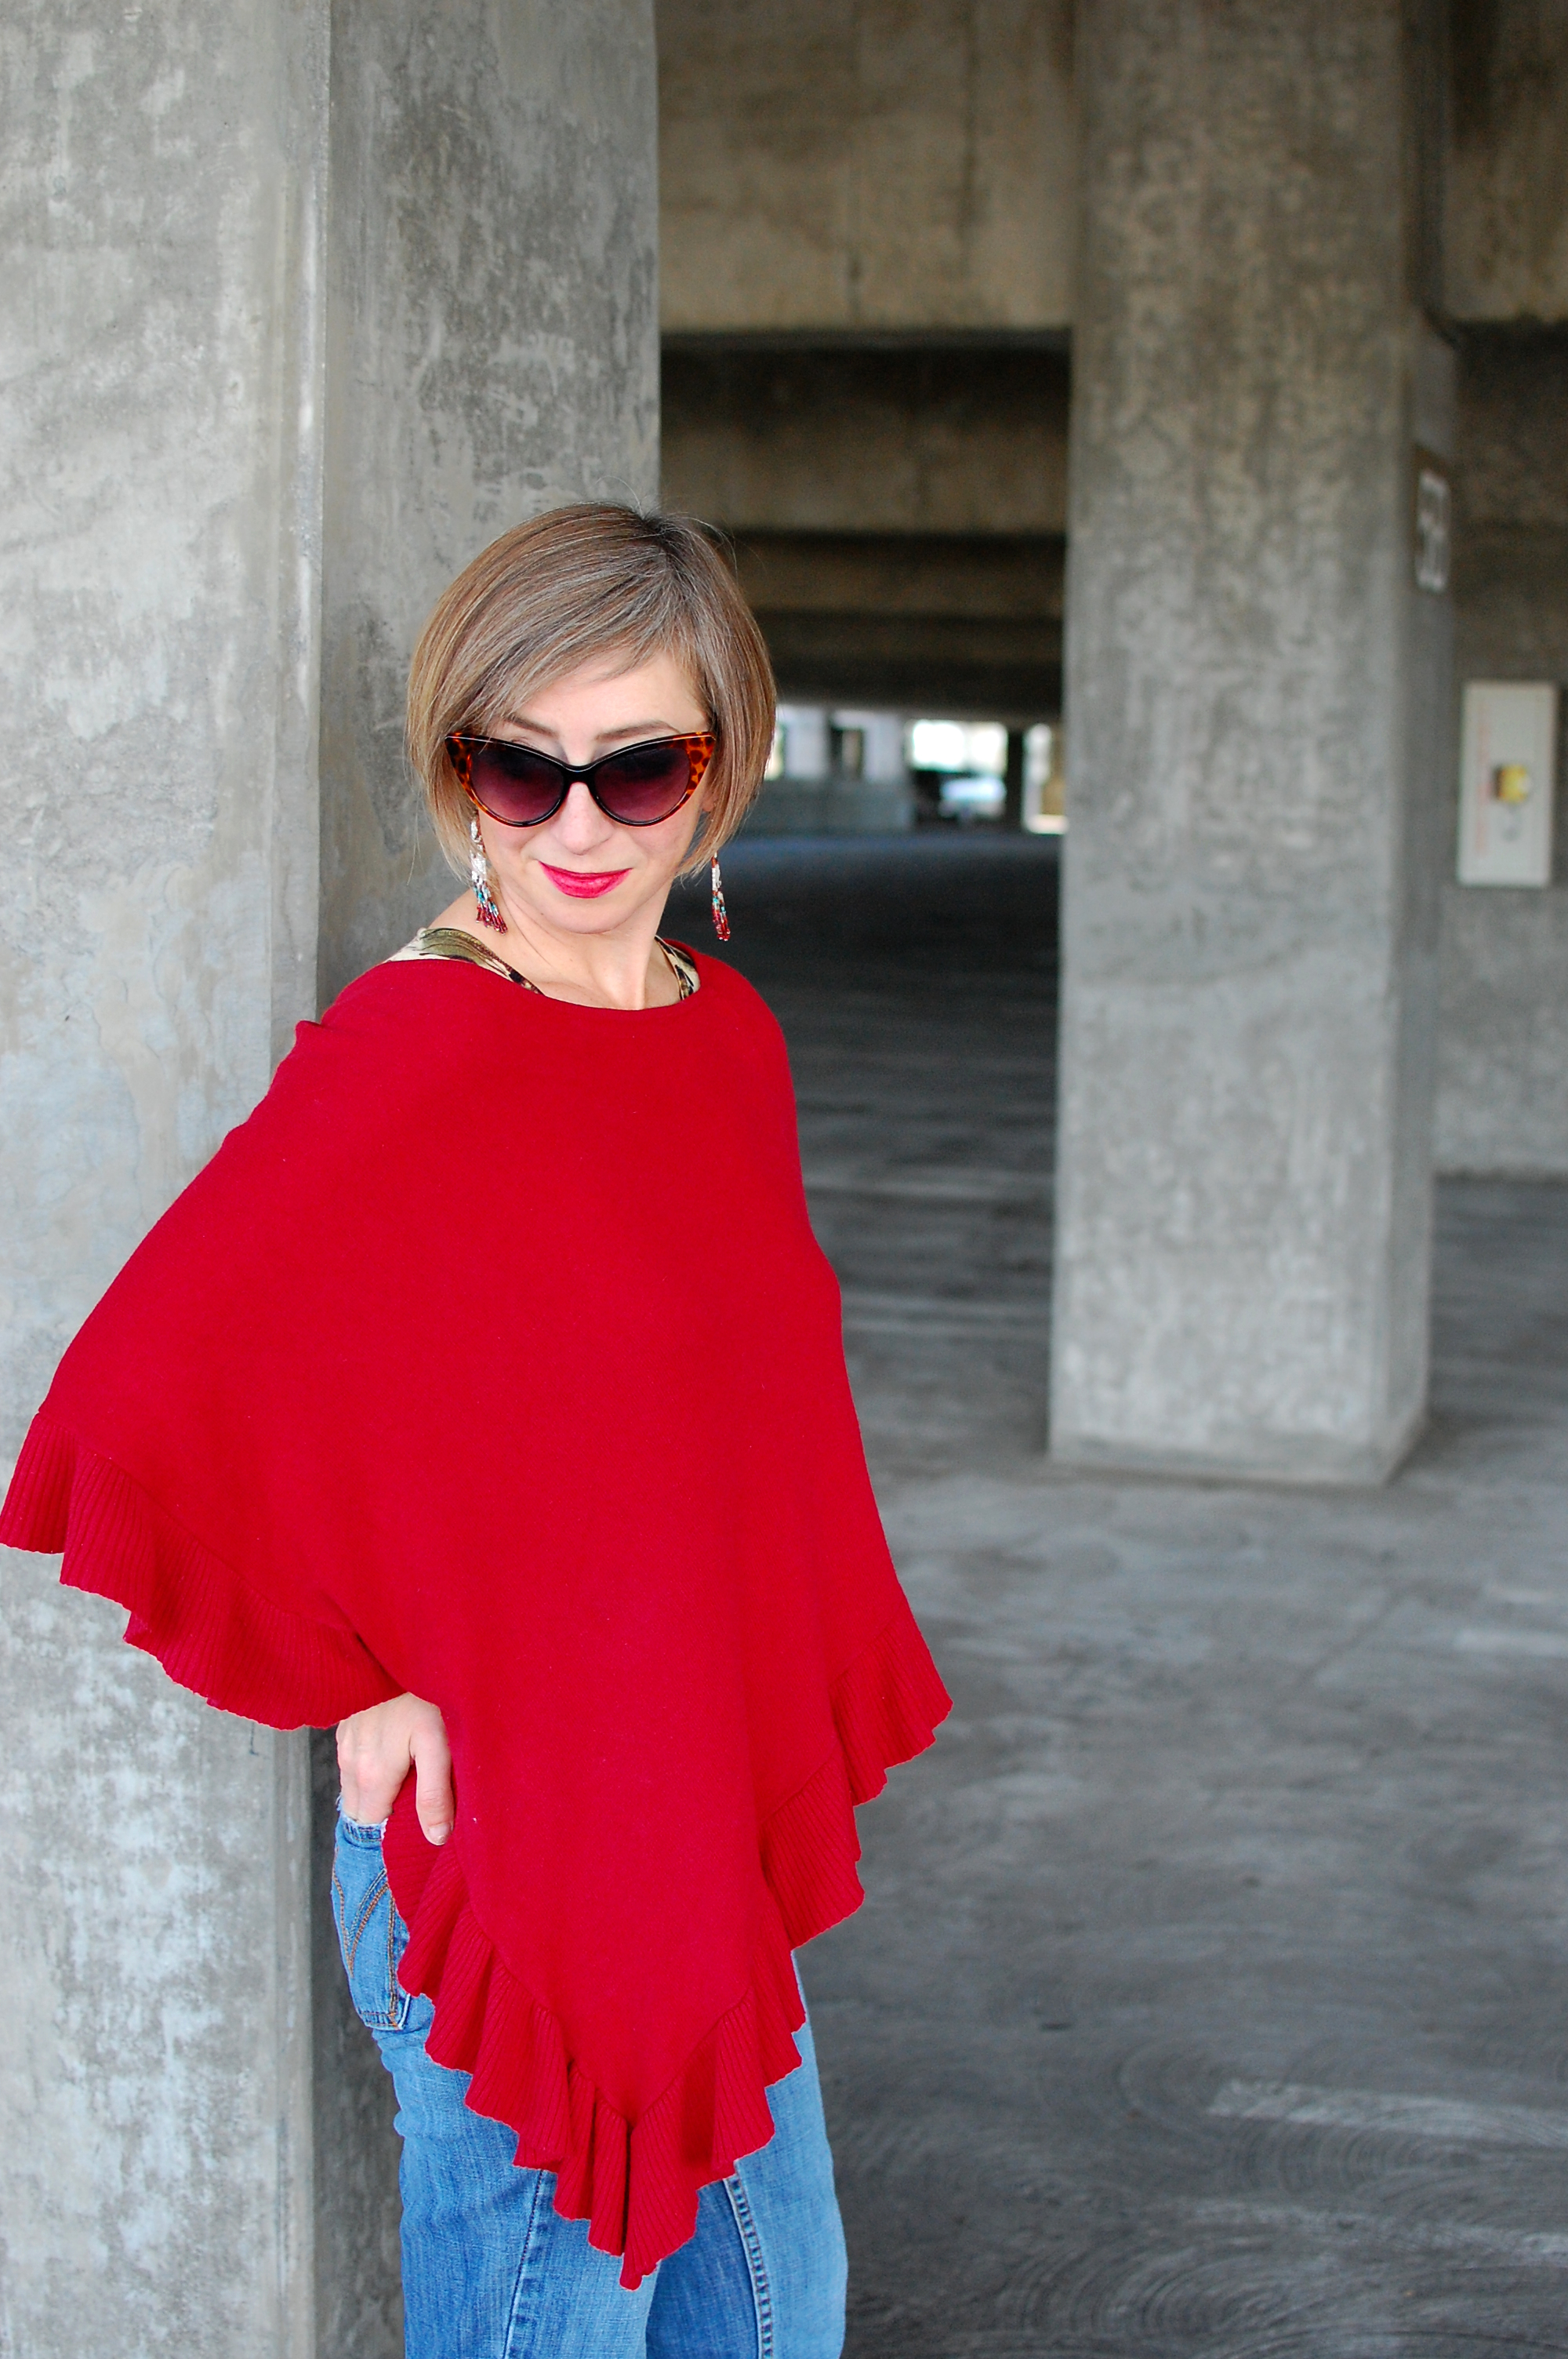 red ruffle poncho ootd whatiwore2day